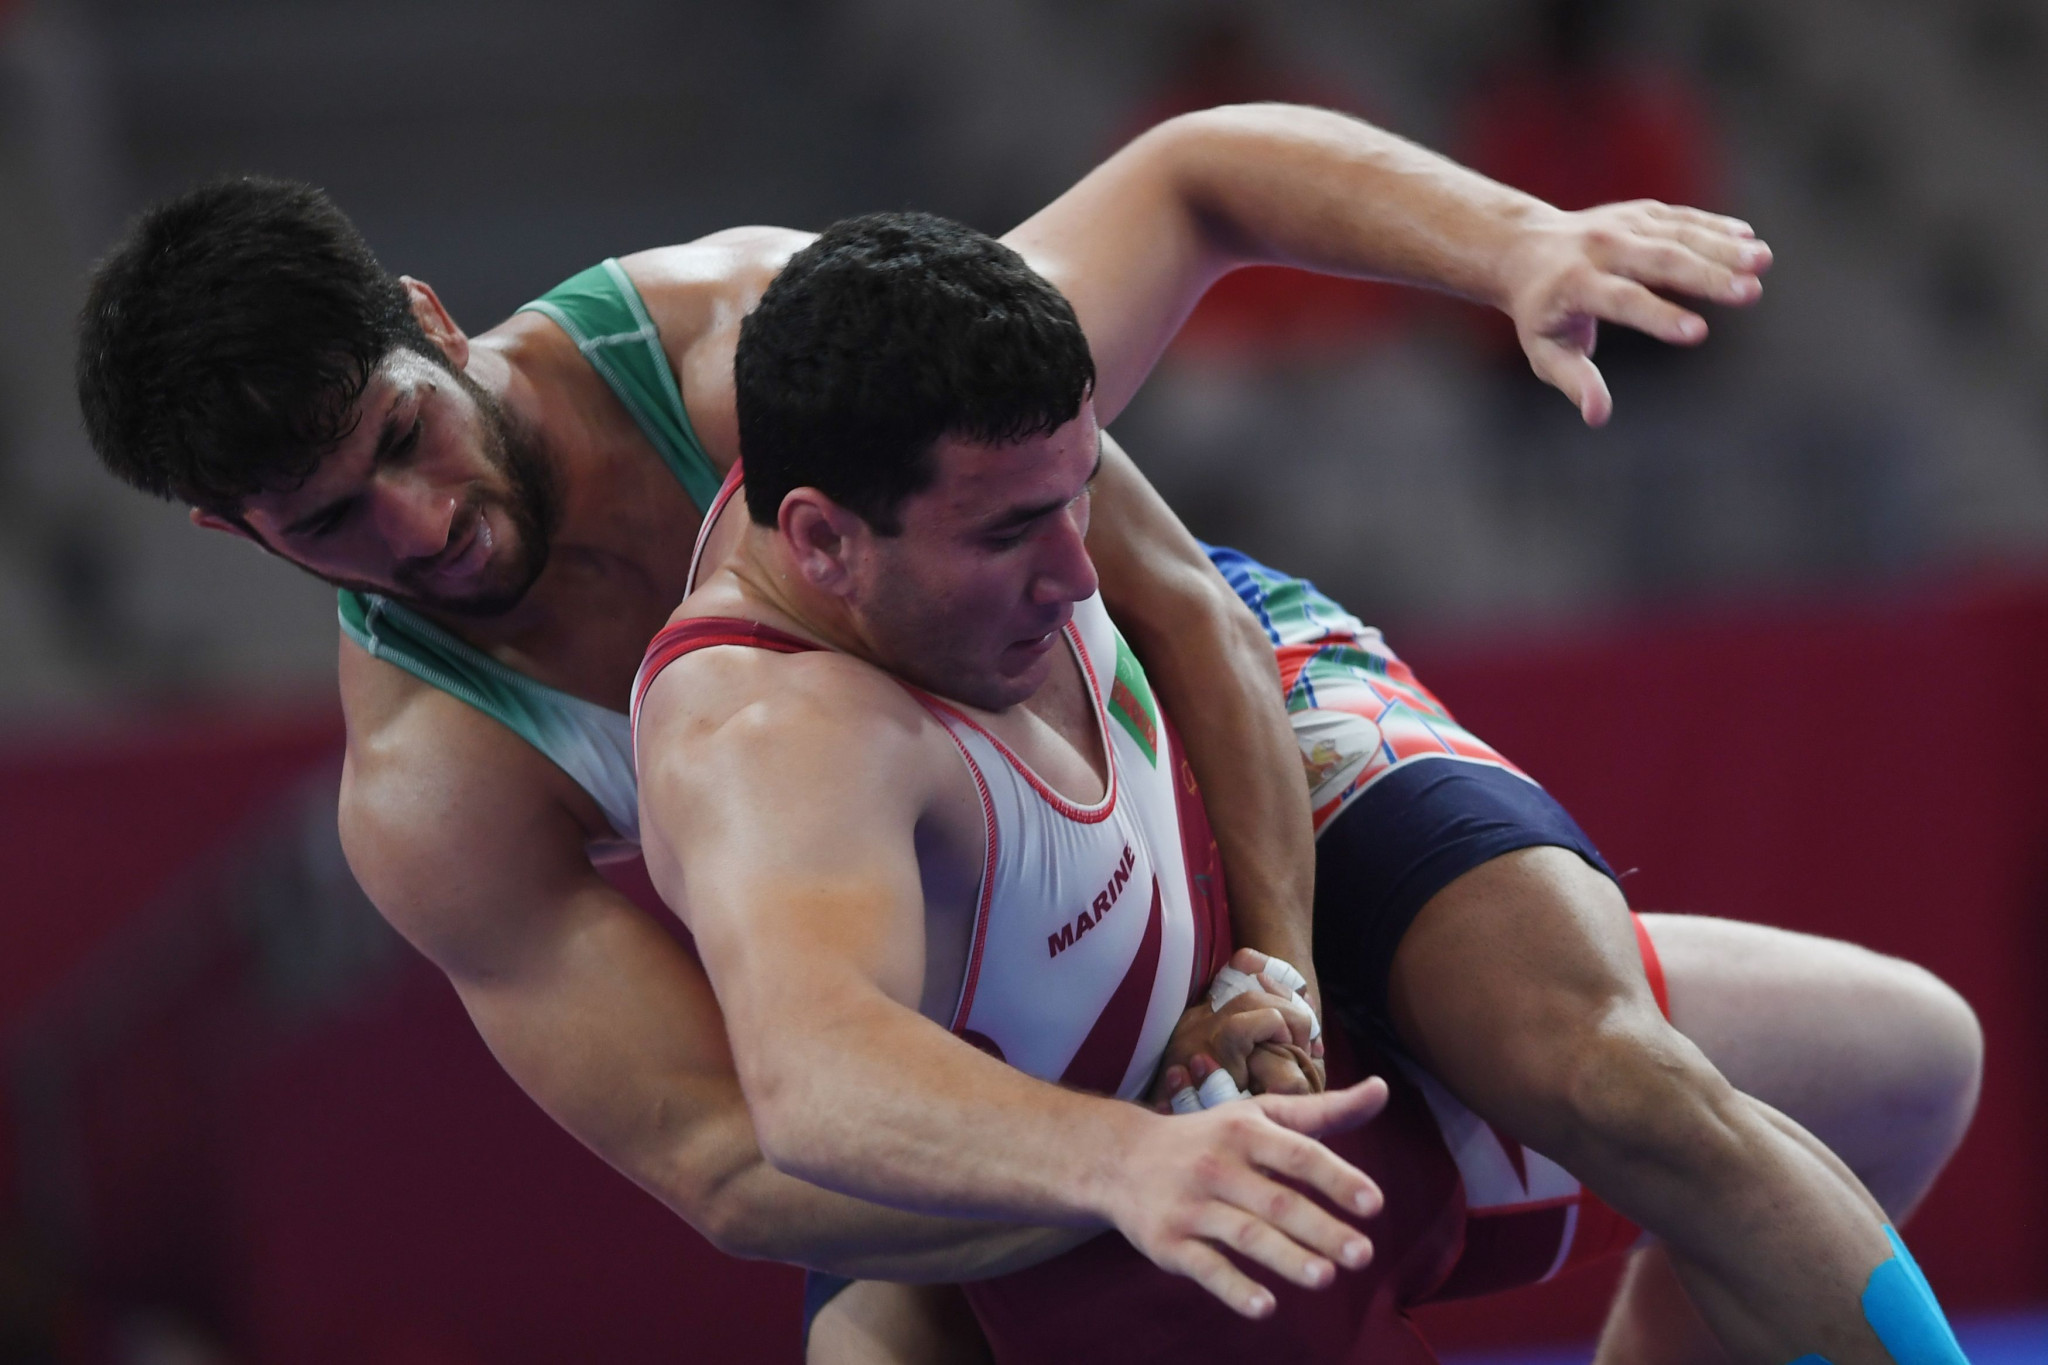 Rustem Nazarov's compatriot Shyhazberdi Ovelekov won a bronze medal in the men's Greco-Roman 87kg category at the 2018 Asian Games ©Getty Images